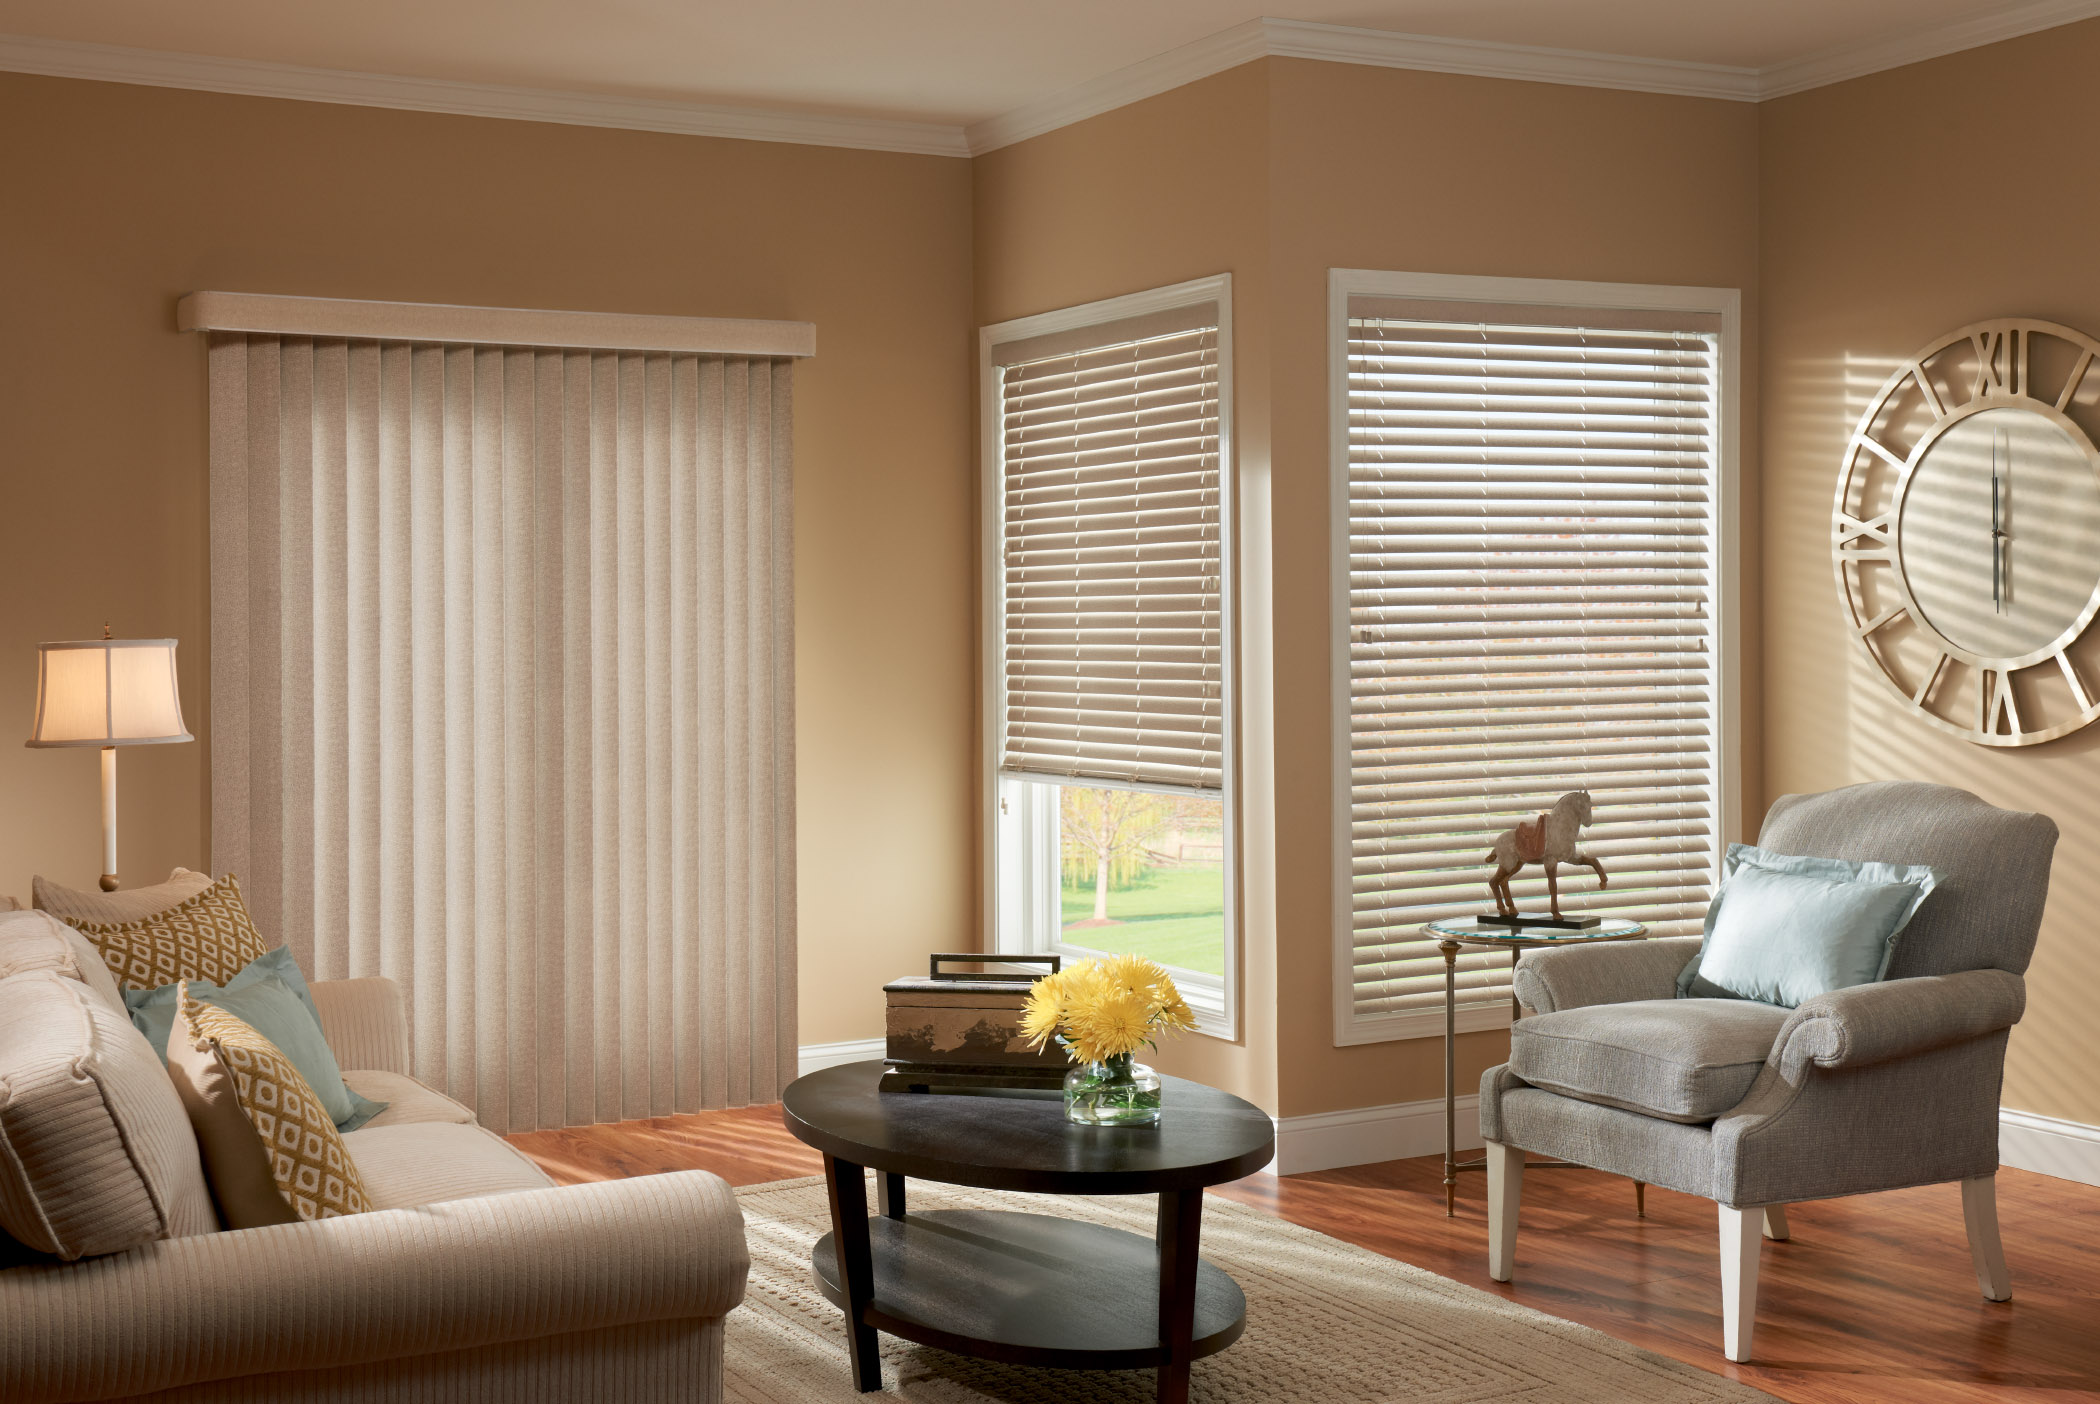 Blackwater blinds blackwater blinds for Best shades for windows